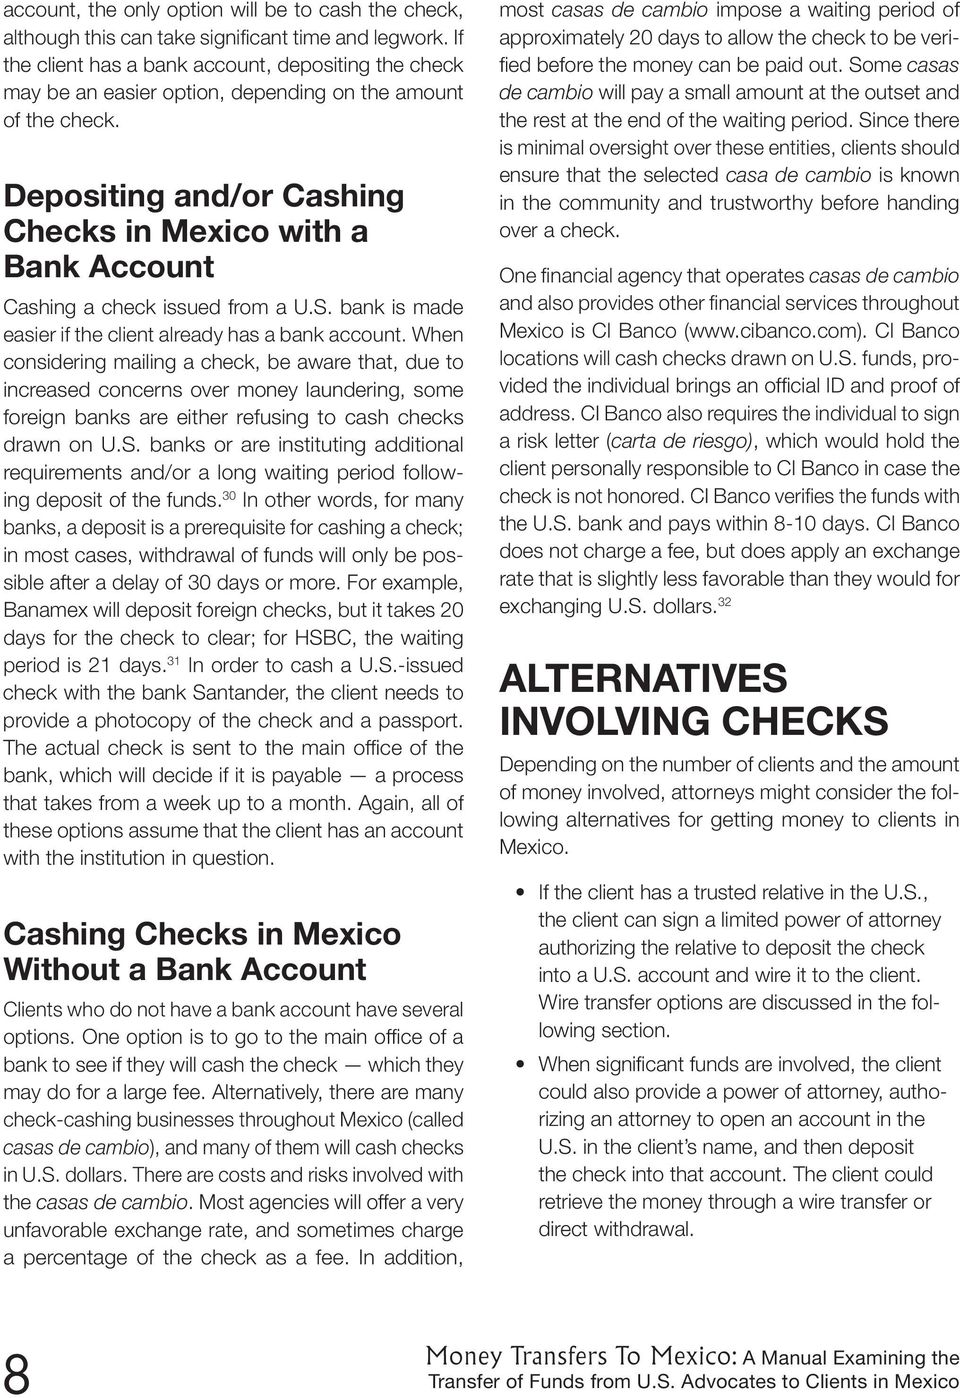 Depositing and/or Cashing Checks in Mexico with a Bank Account Cashing a check issued from a U.S. bank is made easier if the client already has a bank account.